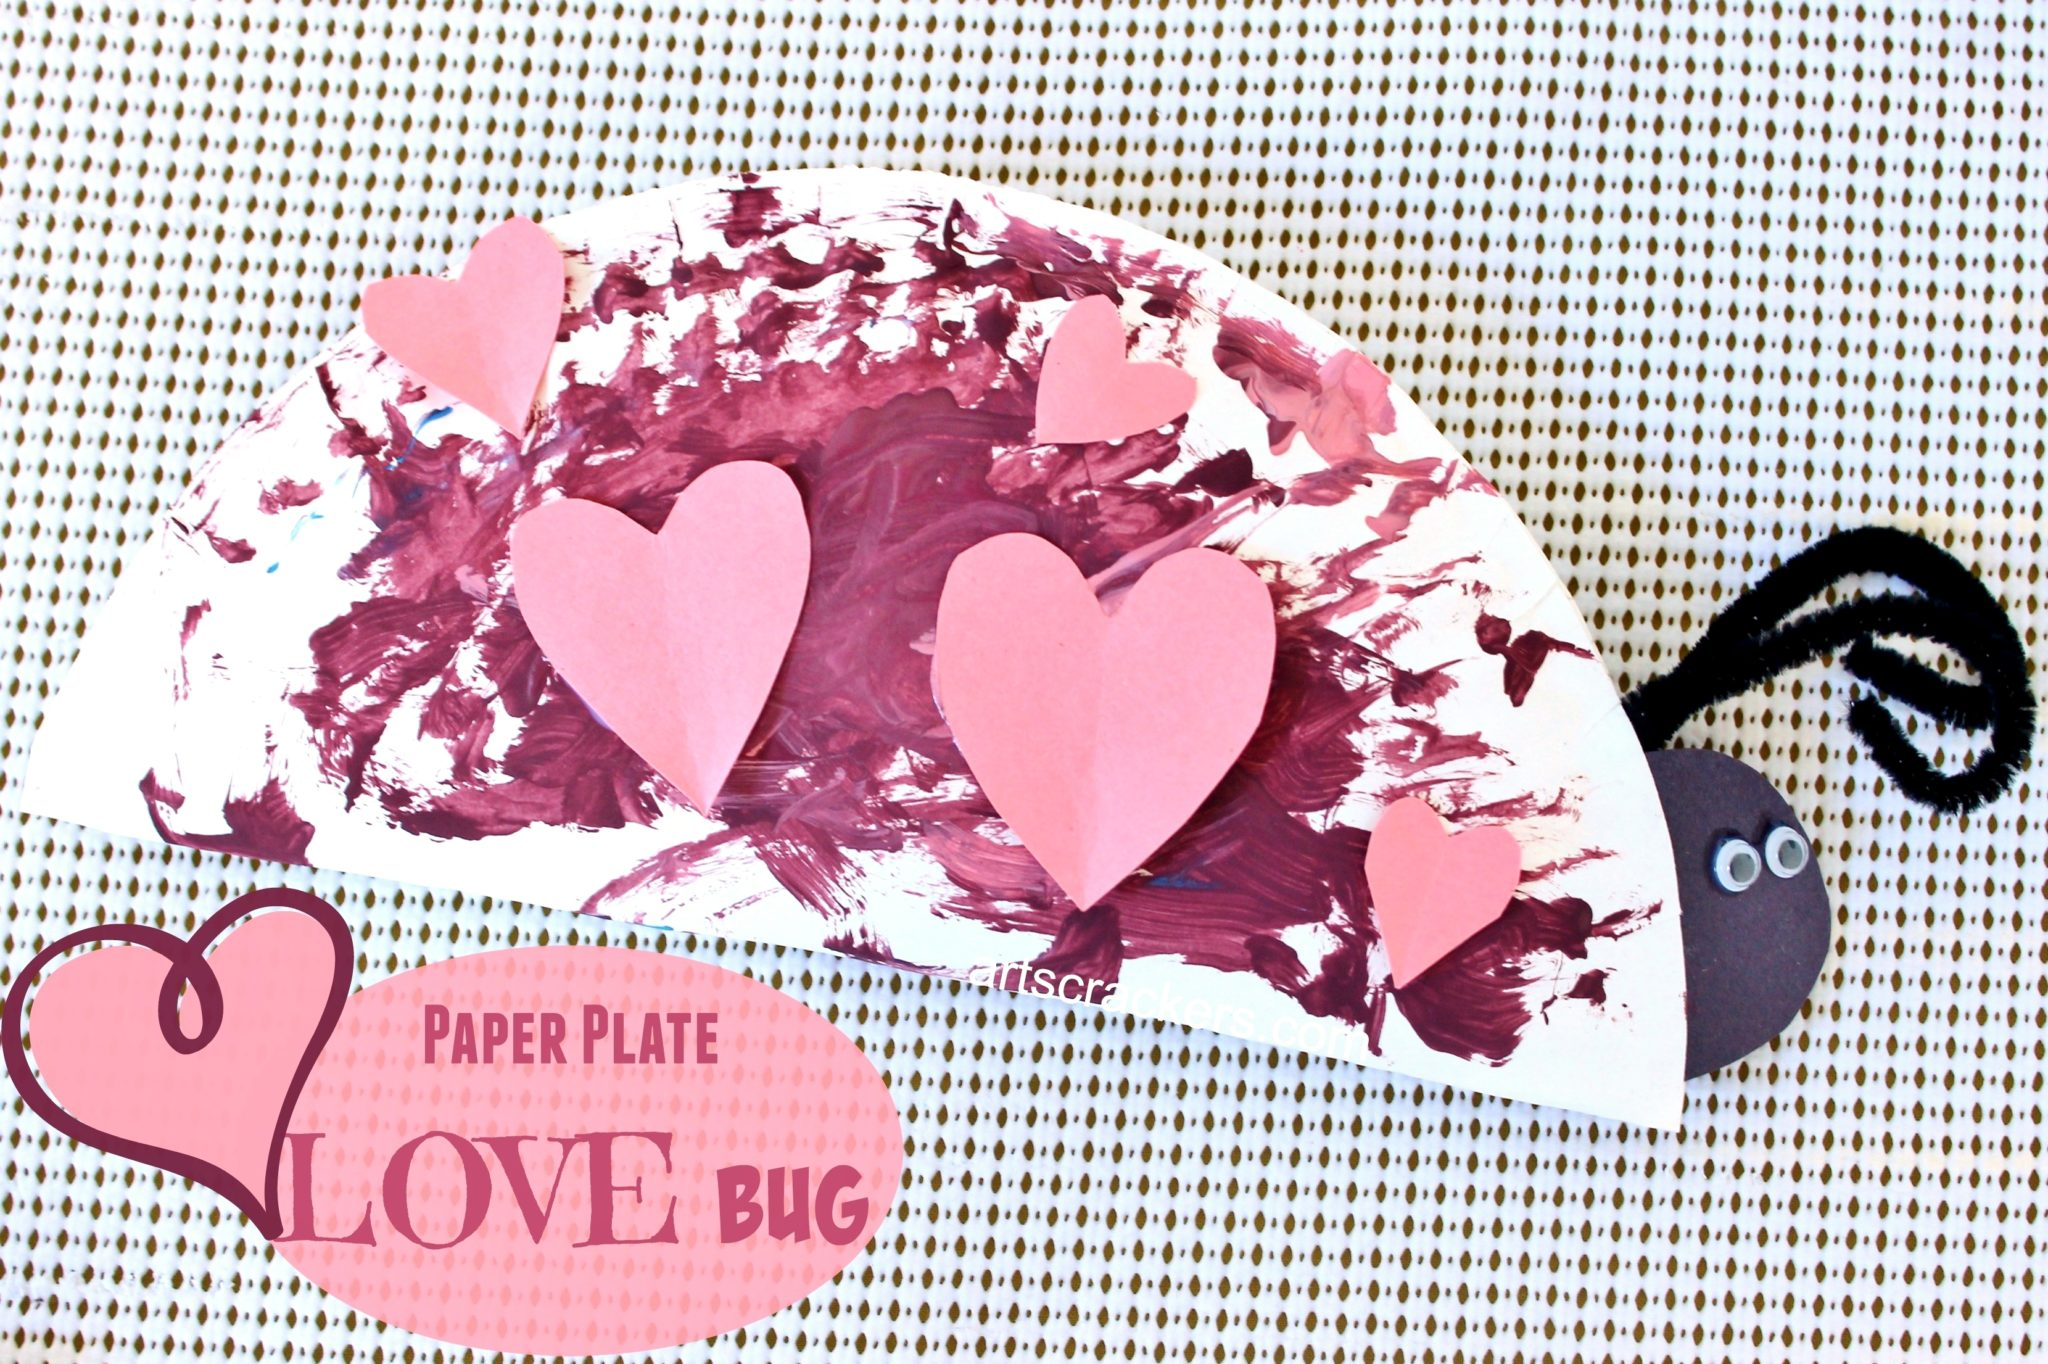 DIY Paper Plate Love Bug